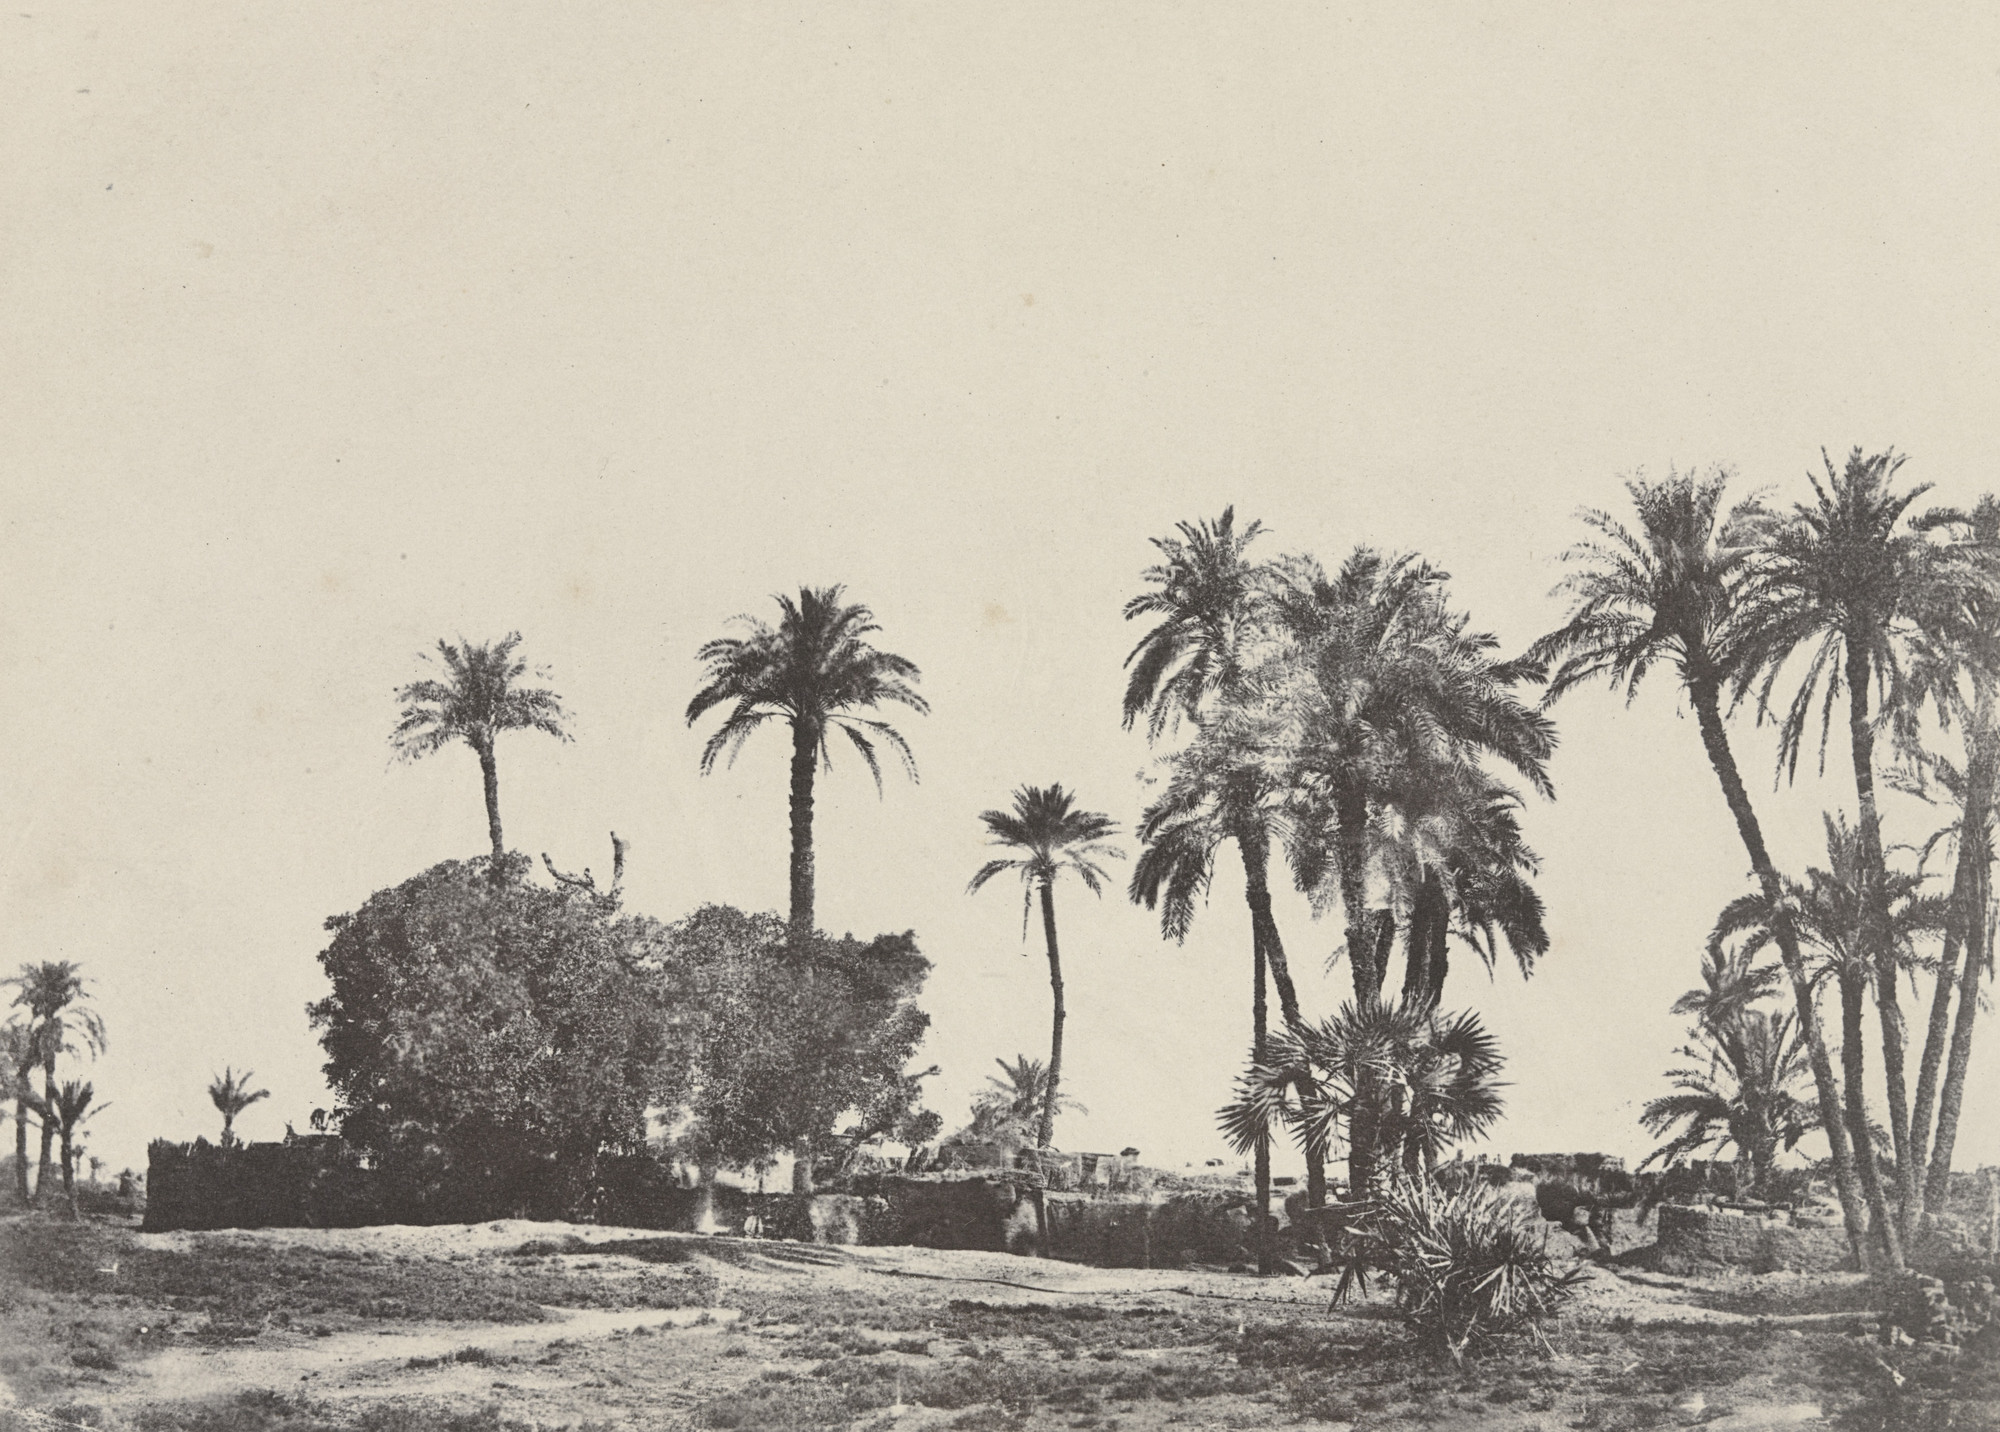 Maxime Du Camp. Village de Hamameh. 1849